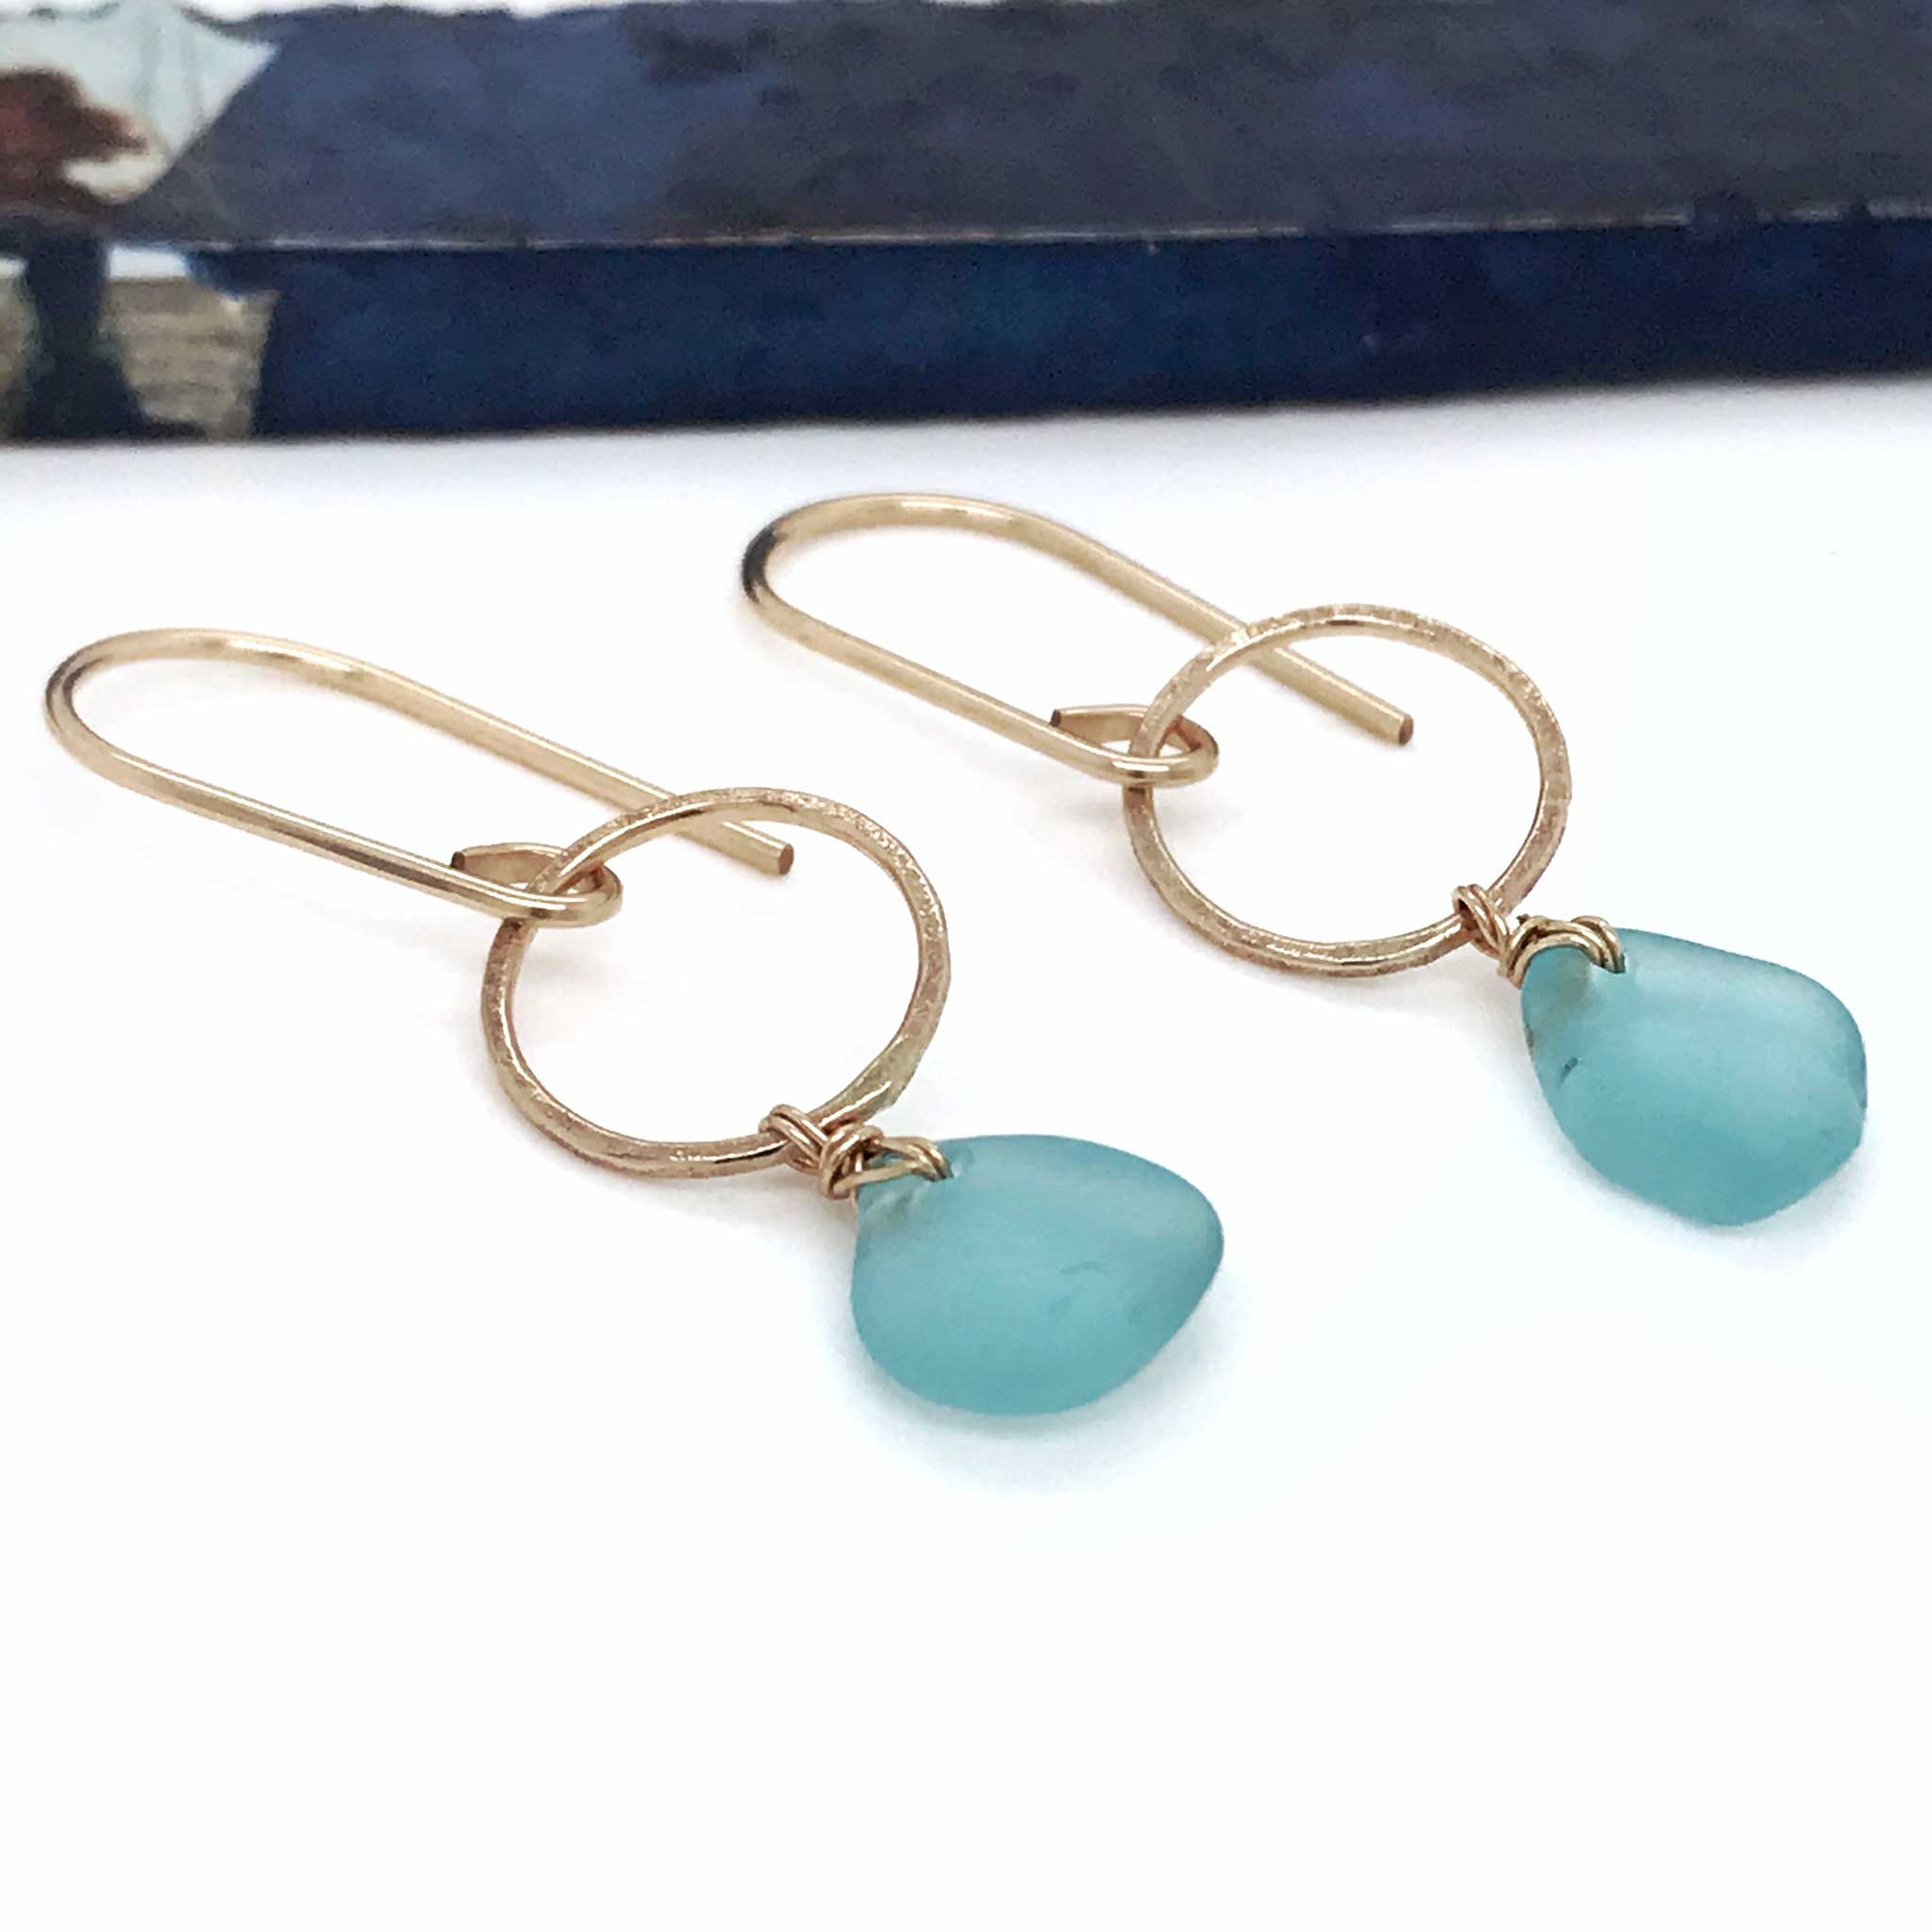 aqua beach glass on gold earrings kriket broadhurst jewellery